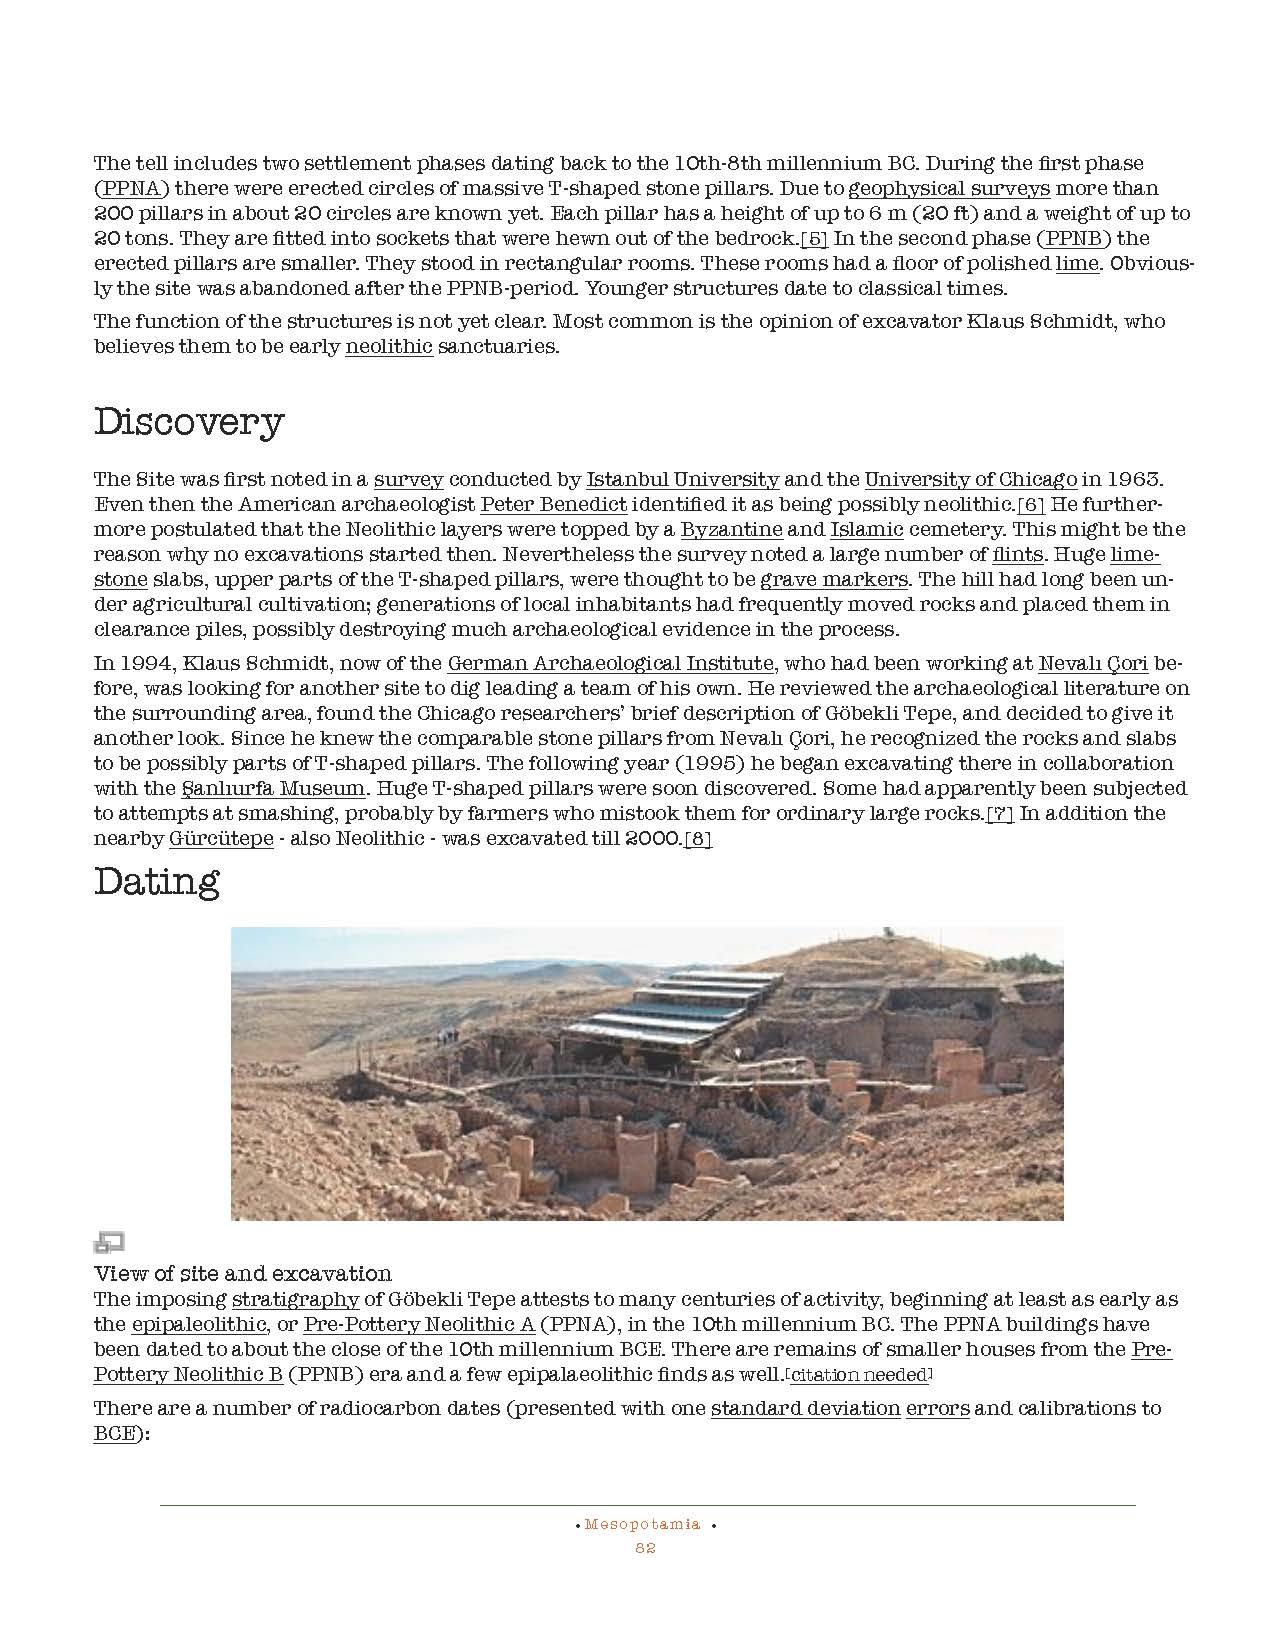 HOCE- Fertile Crescent Notes_Page_082.jpg